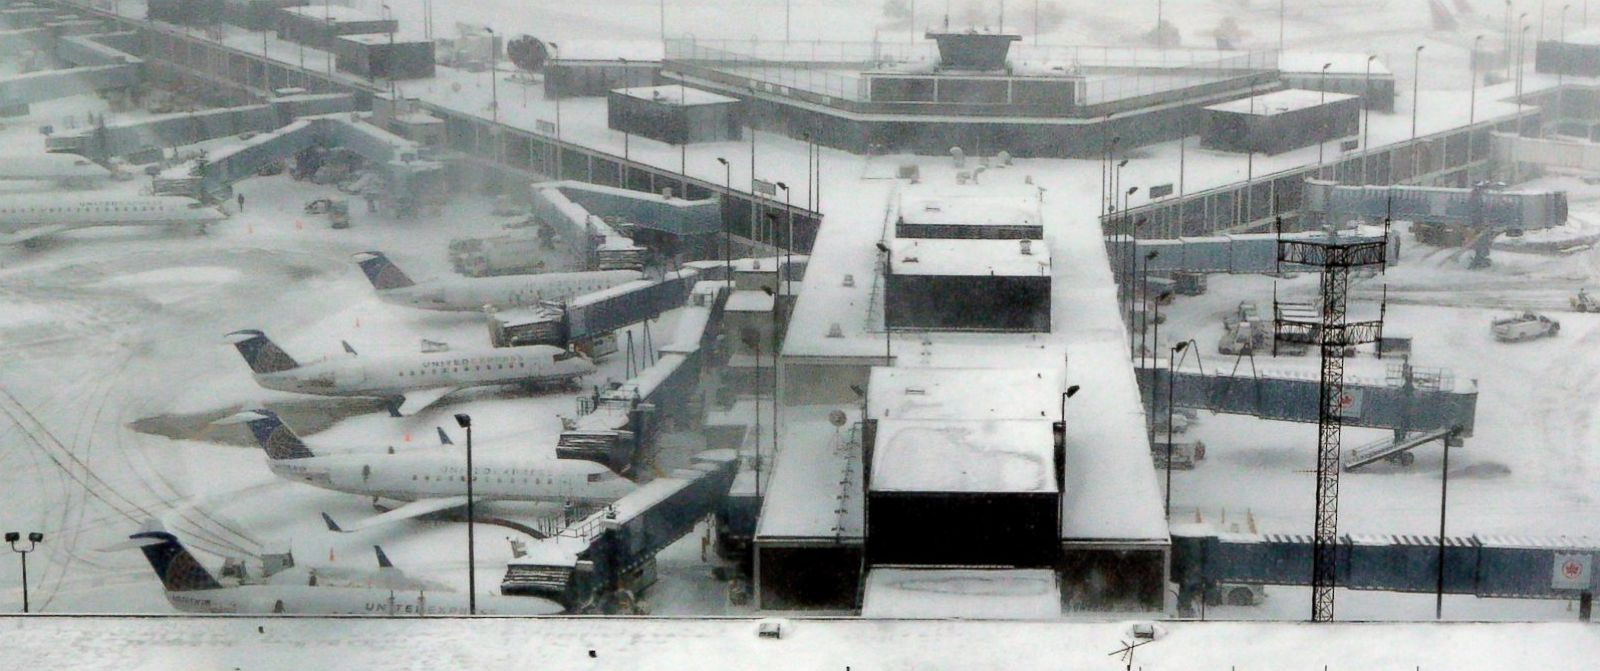 PHOTO: Airplanes stand in the snow at OHare International Airport on Feb. 1, 2015, in Chicago.